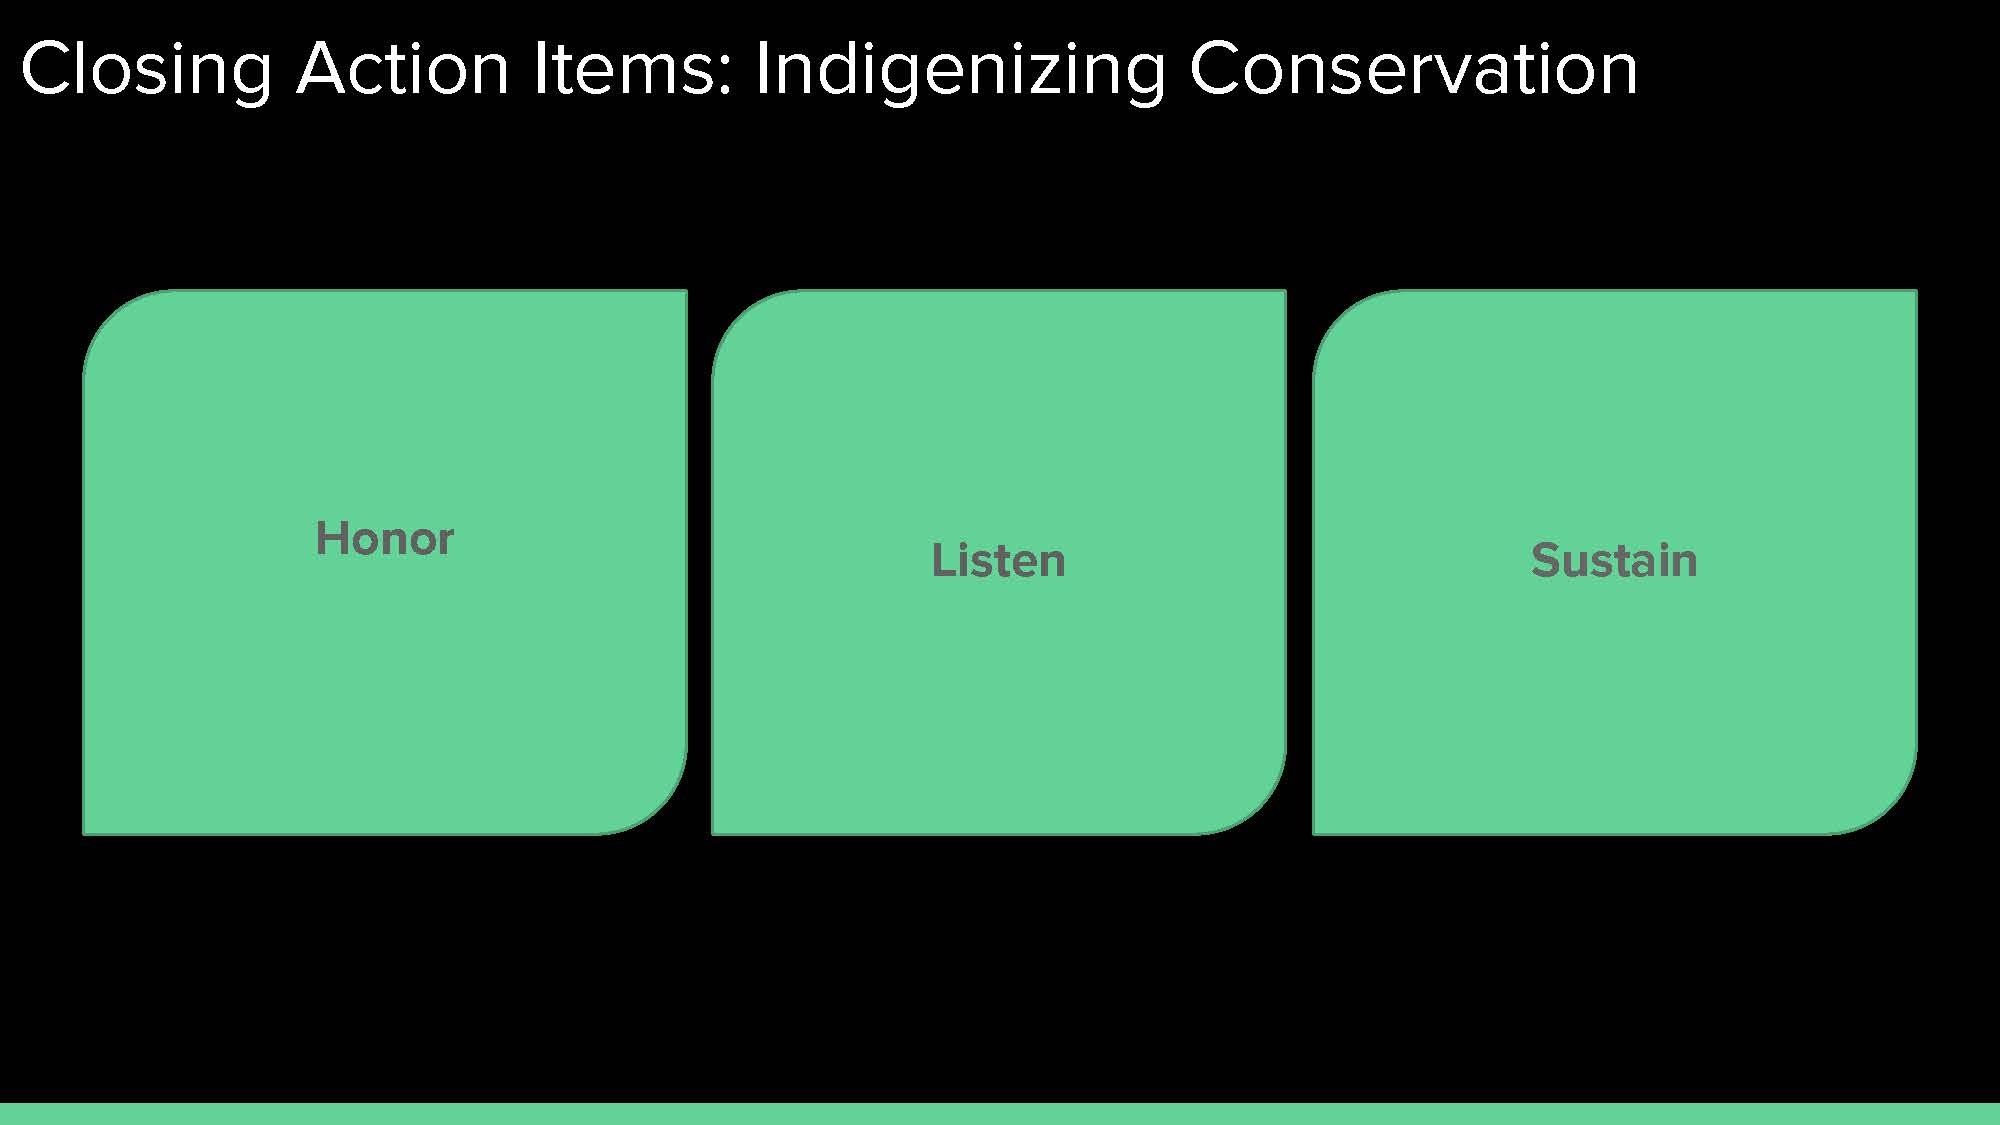 Untold Stories 2019_ Indigenous Futures and Collaborative Conservation_Page_31.jpg